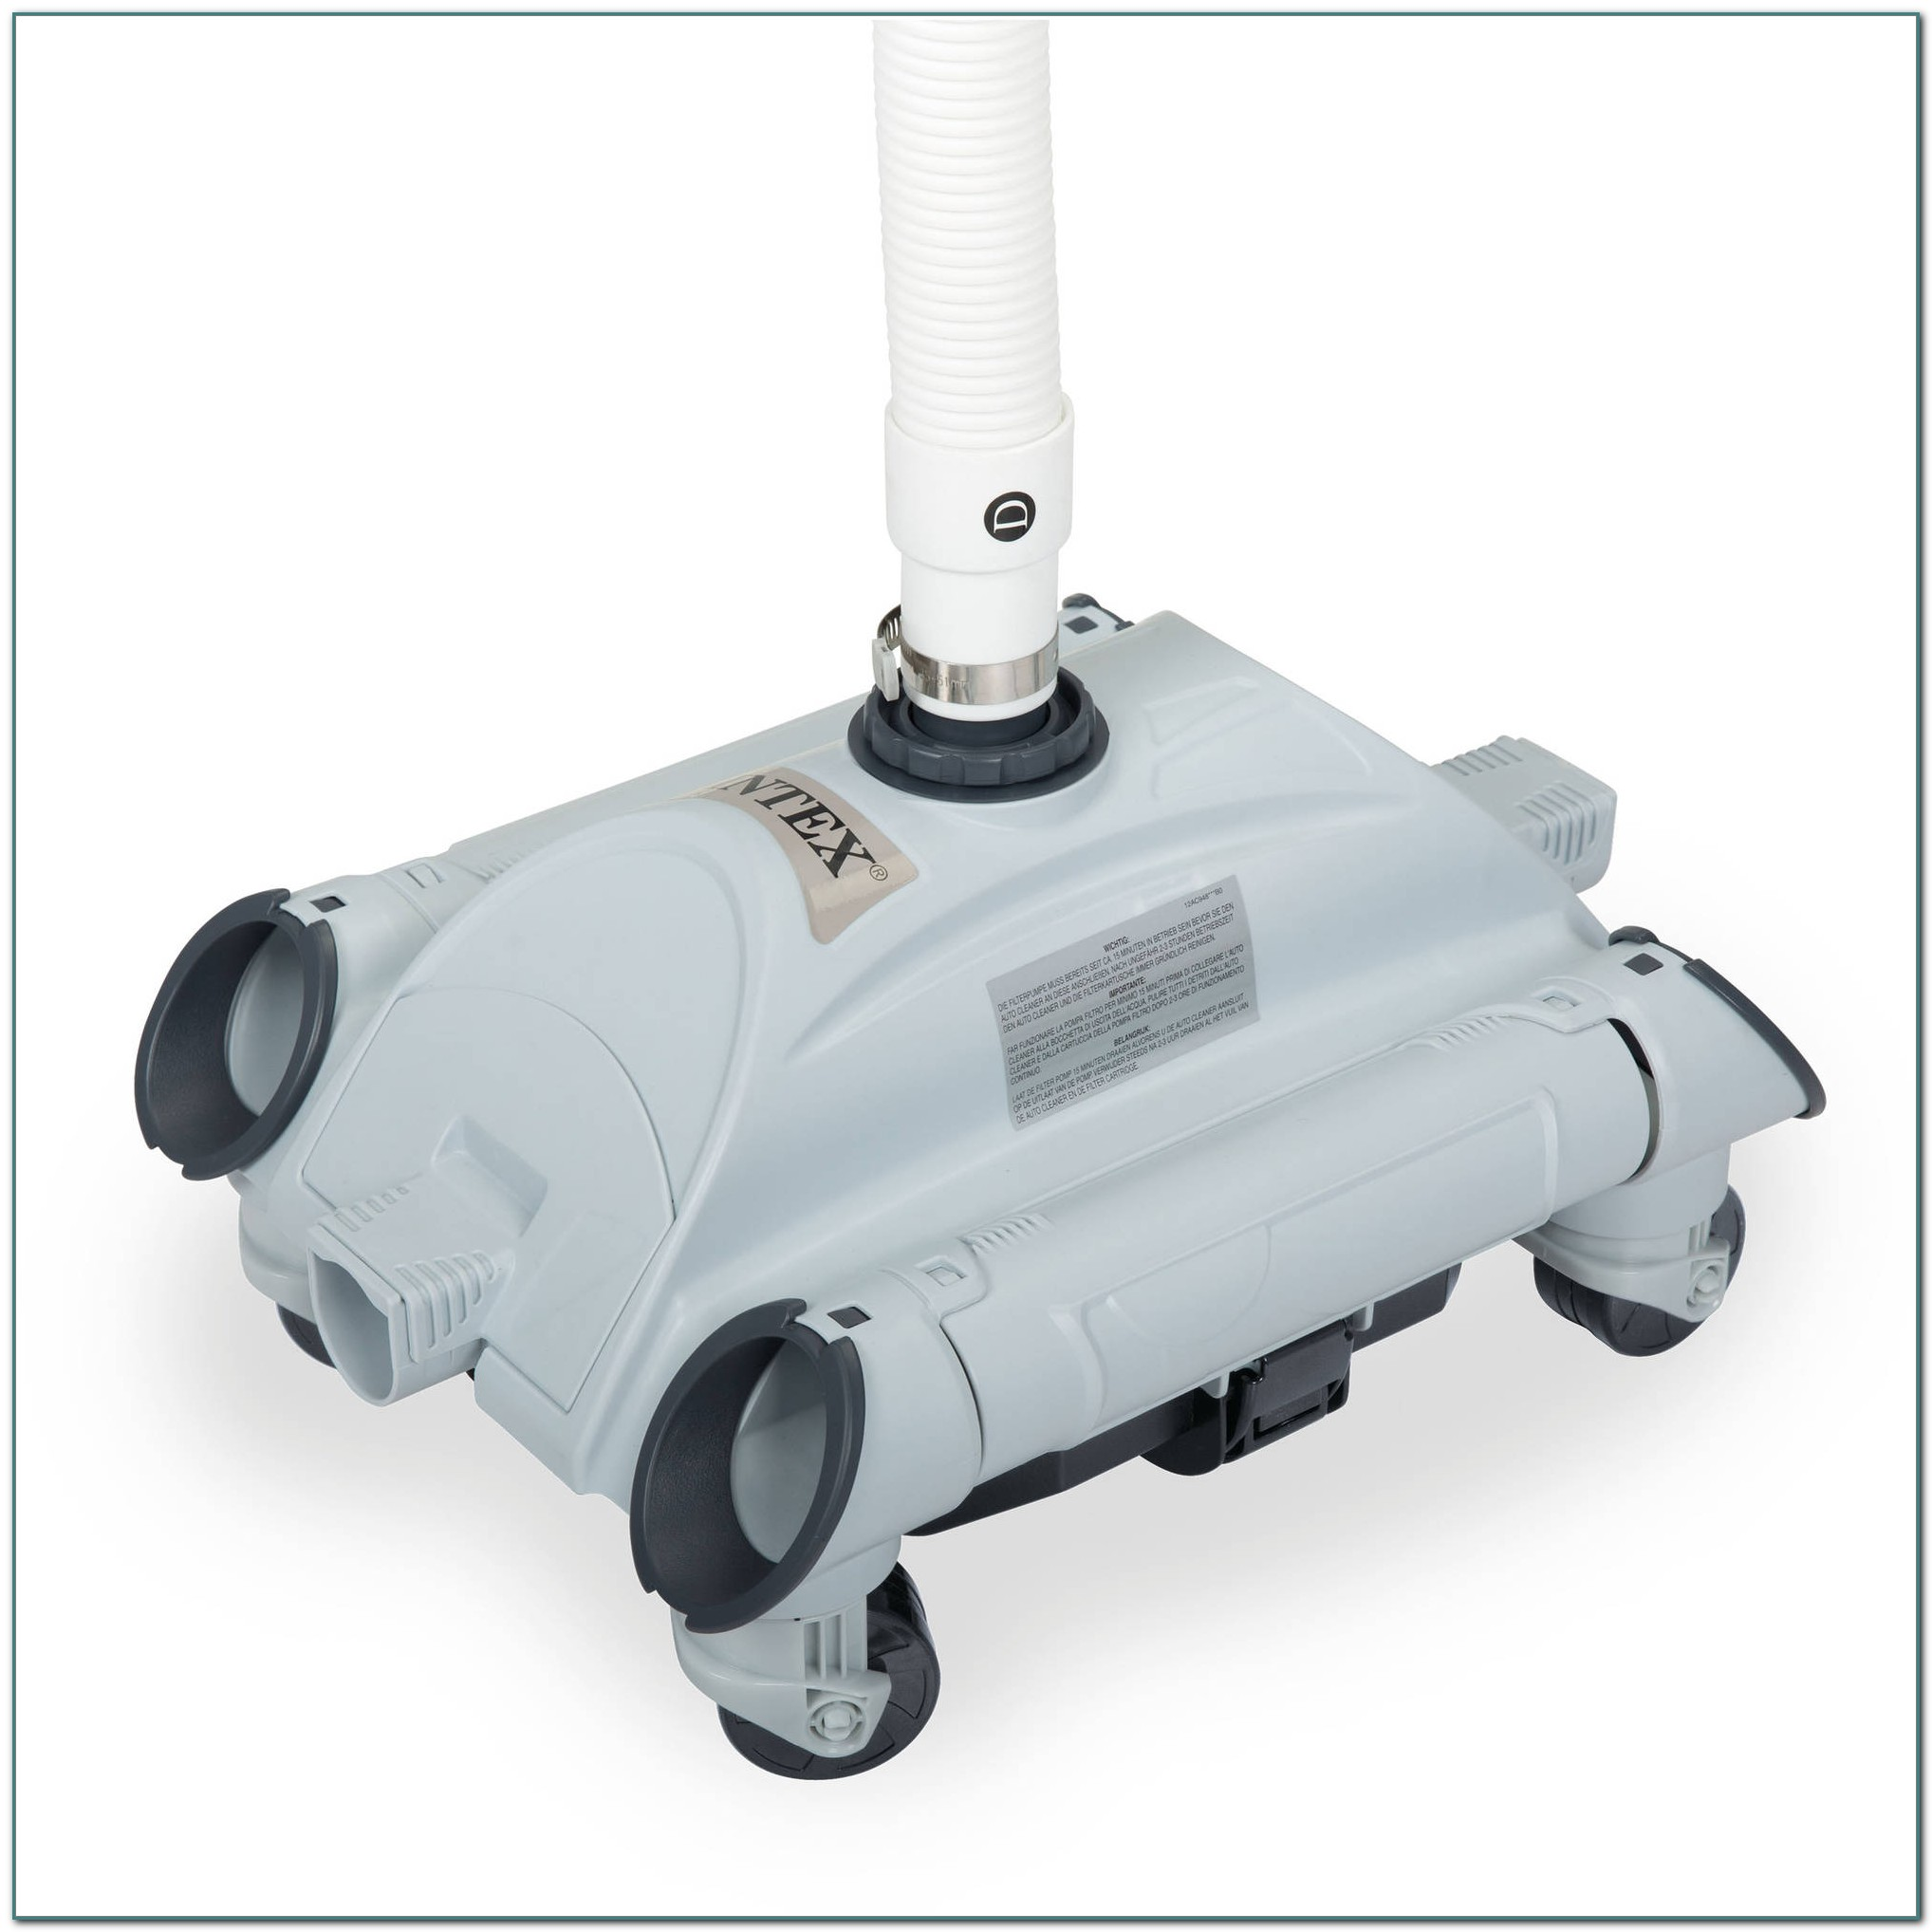 Intex Automatic Above Ground Pool Vacuum